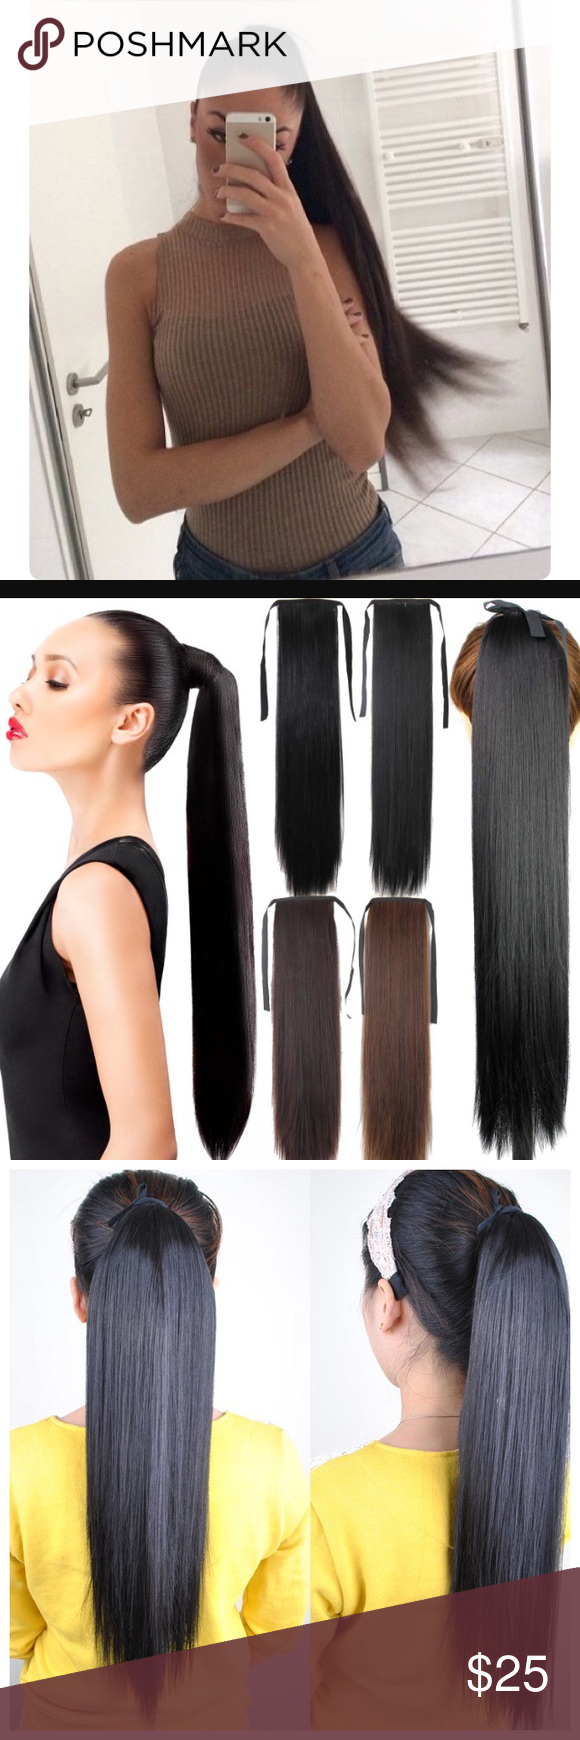 Long Ponytail Hair Extensions Nwt Ponytail Hair Extensions